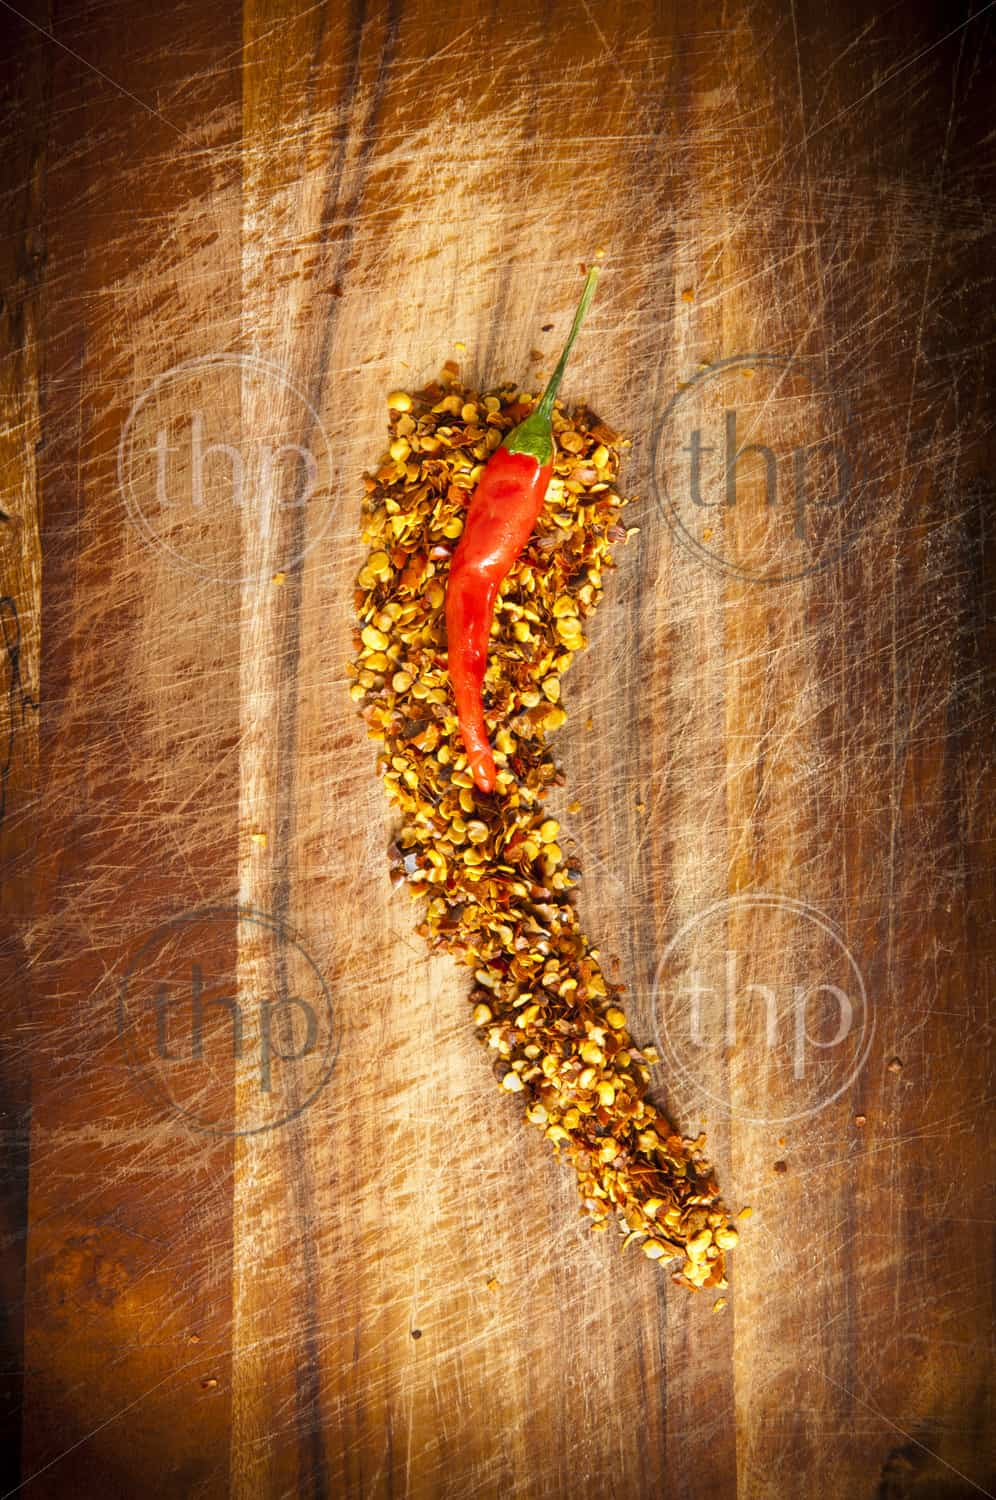 Red hot chilli concept - chilli sits atop chilli seeds shaped like a chilli